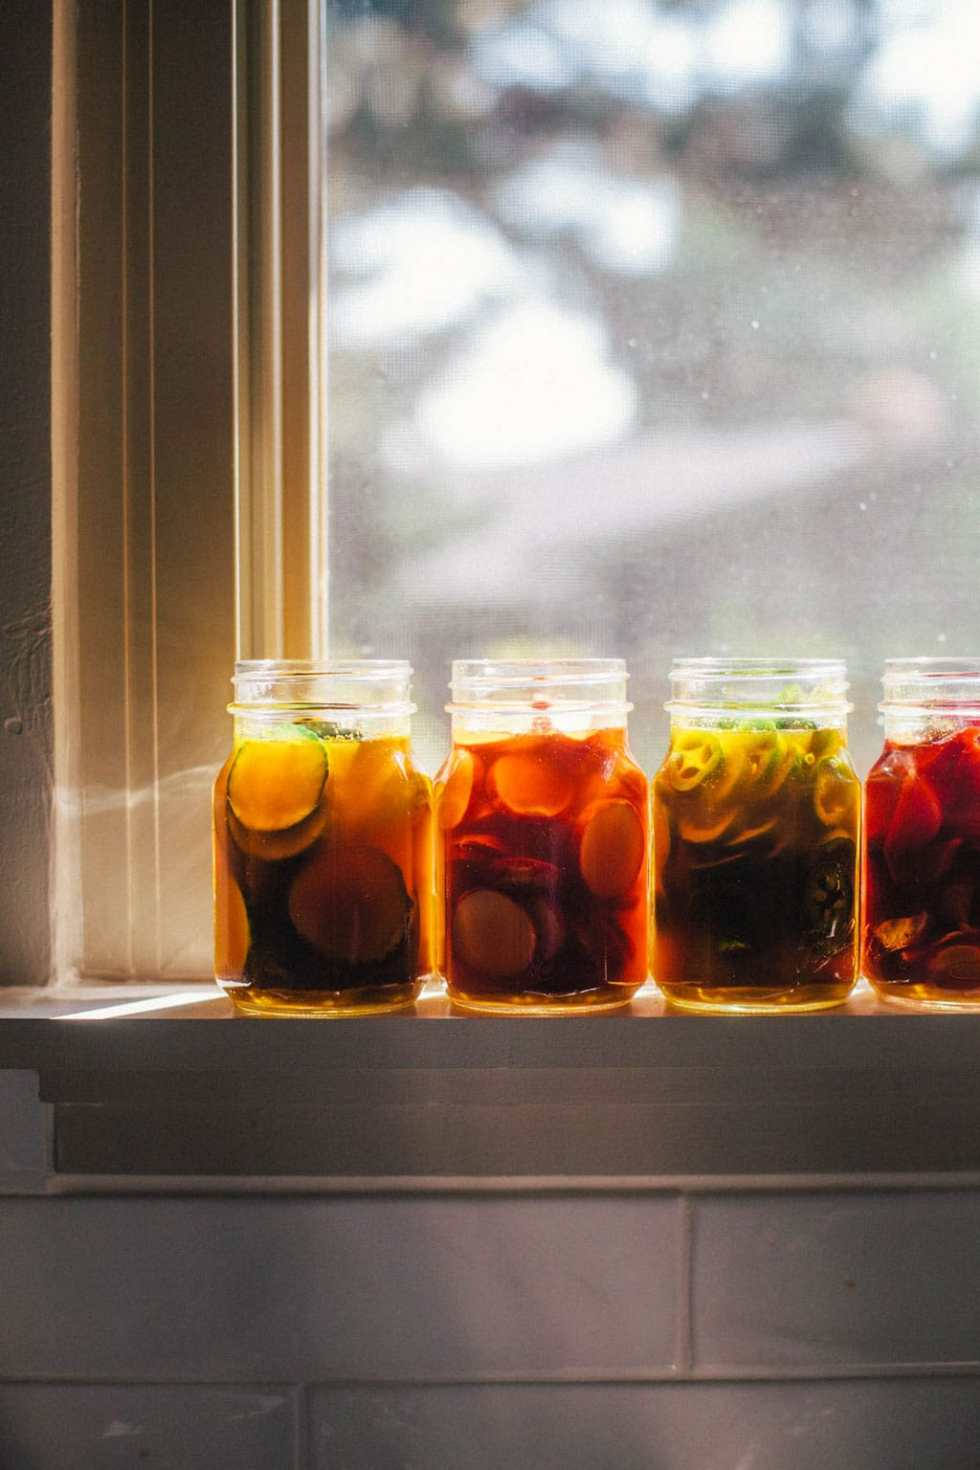 Four jars of pickles sitting on a window sill